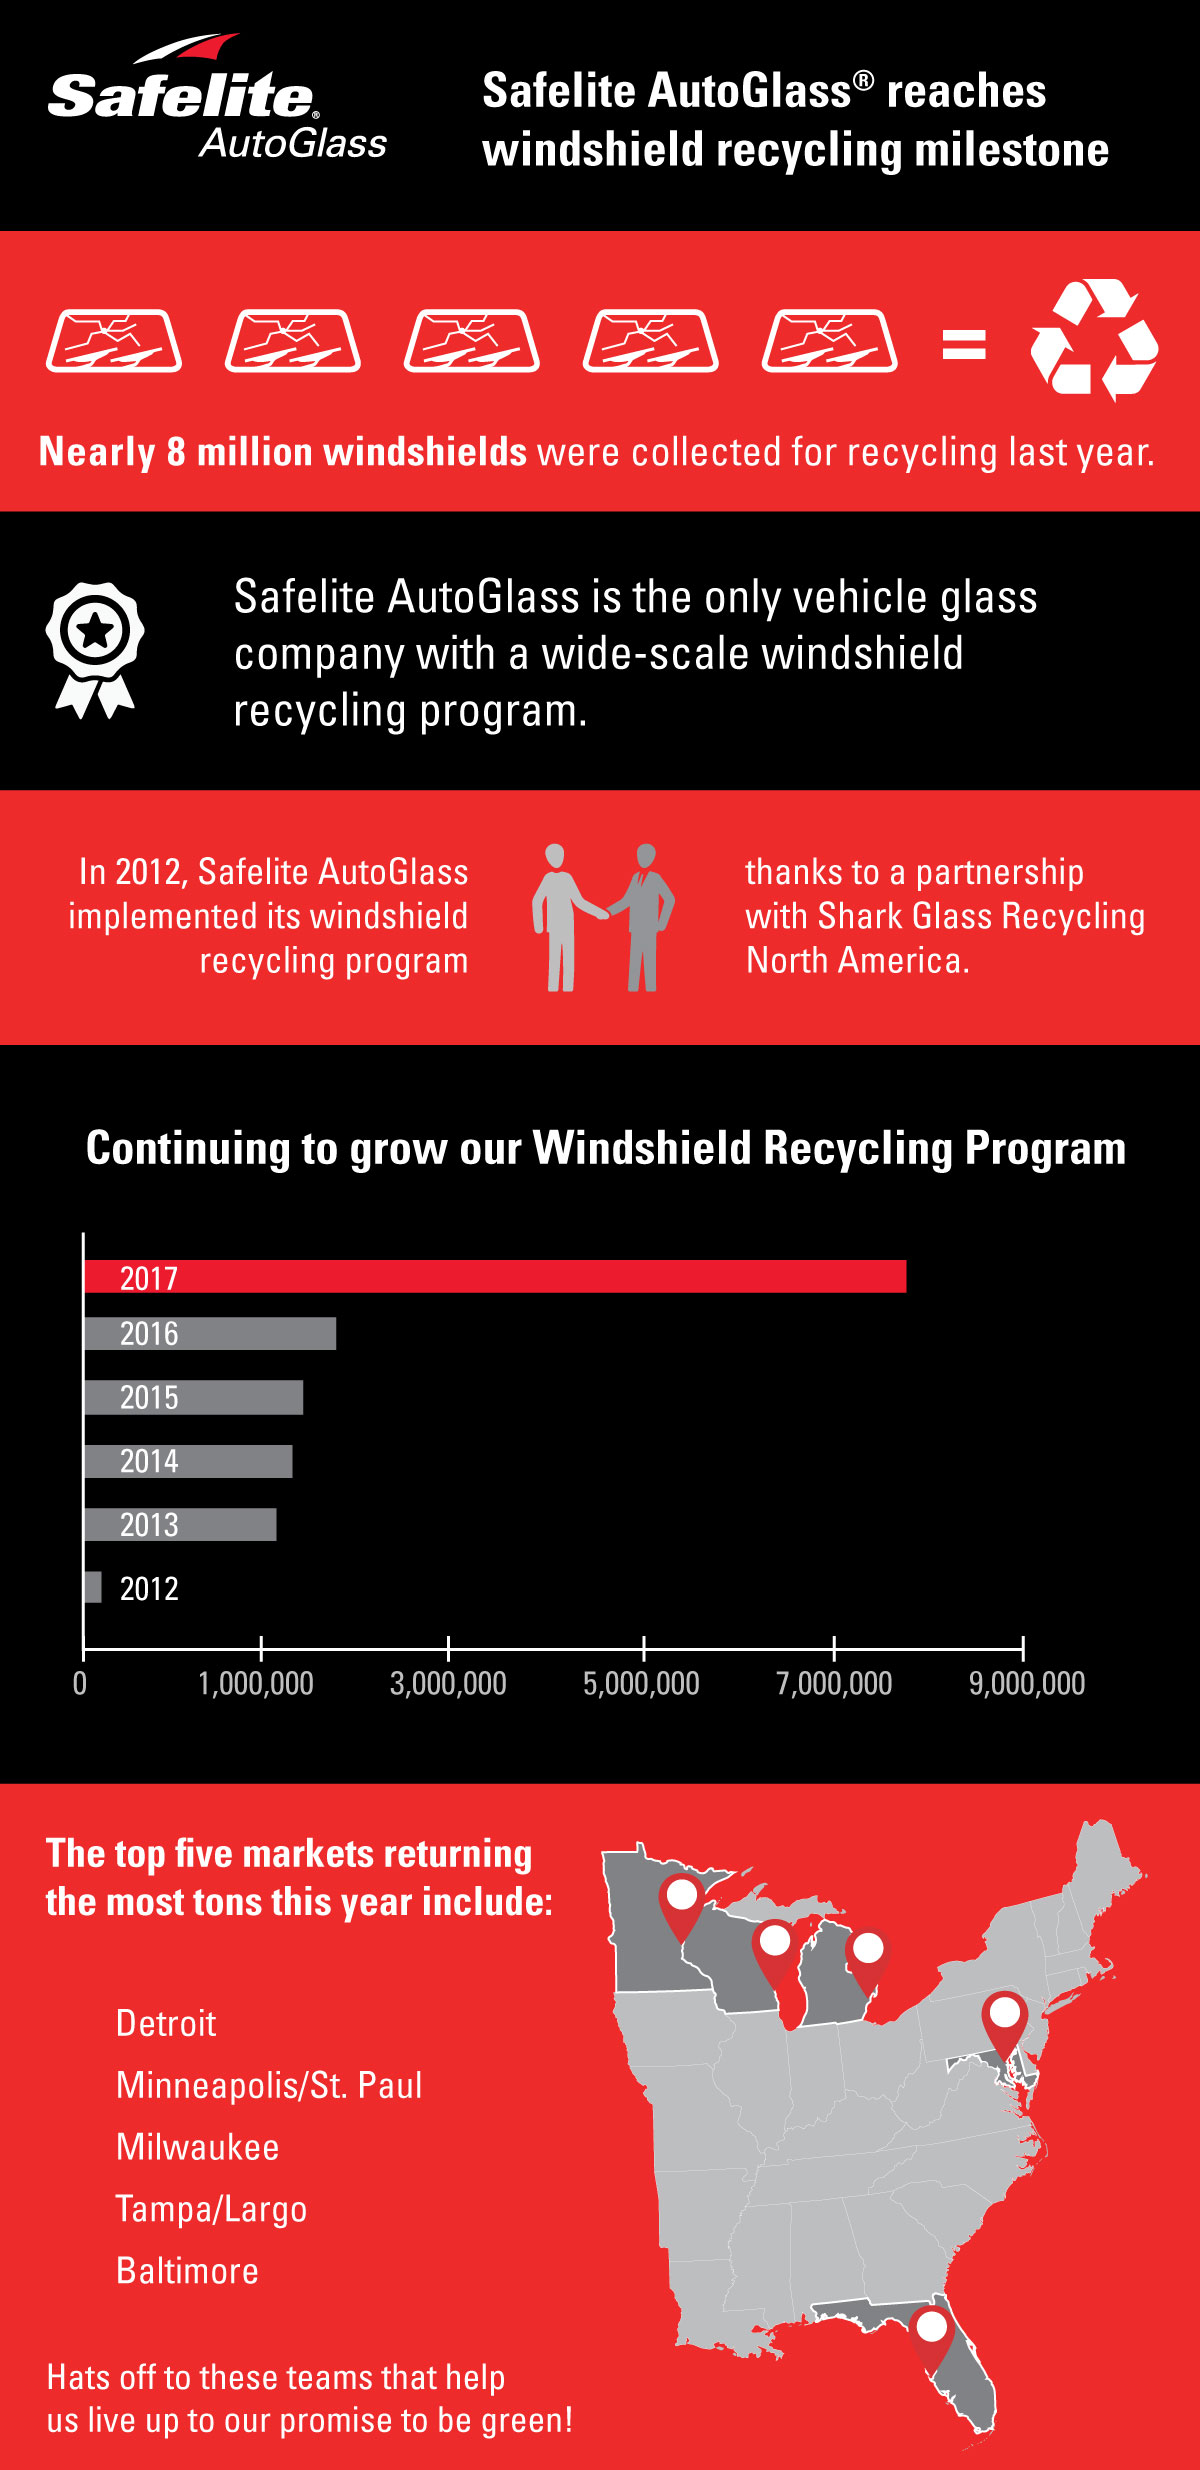 In 2017, Safelite recycled a record number of windshields.